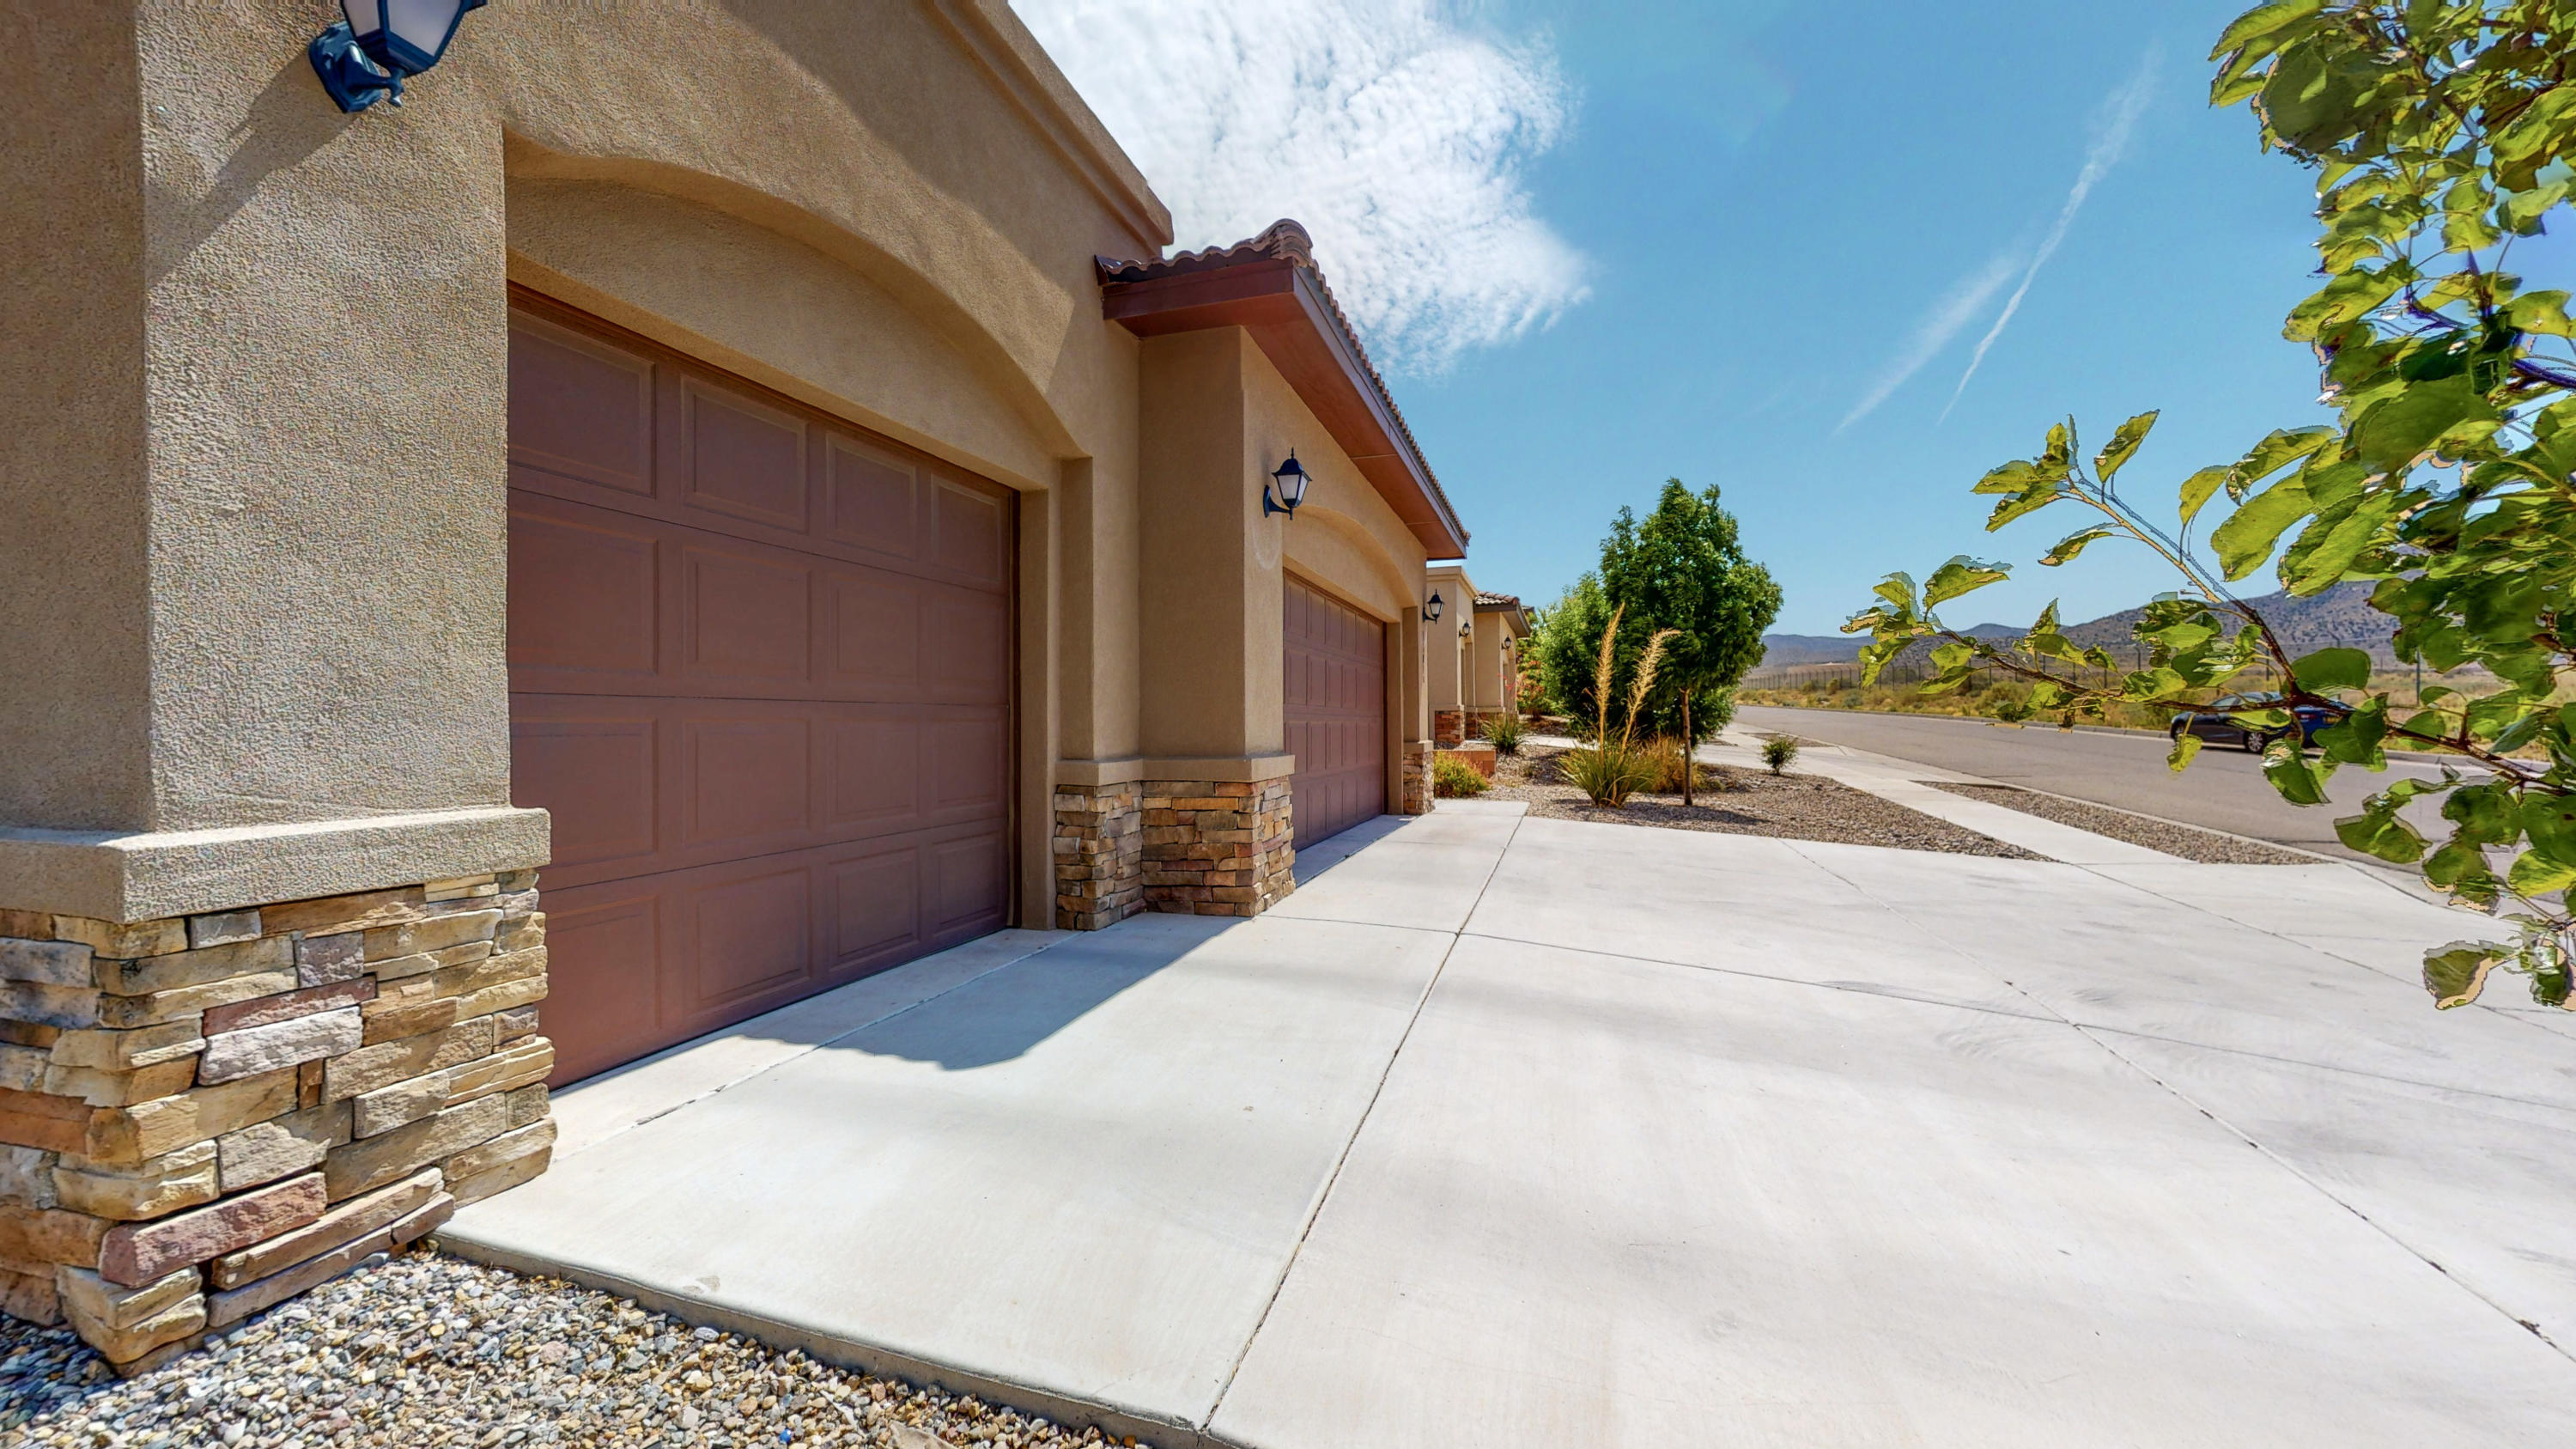 Come see this amazing RayLee home located in the highly sought after Juan Tabo Hills subdivision. This property showcases a functional floor plan with attention to detail. Chef kitchen boasts granite counter tops, eat in bar and stainless appliances. Features two living rooms with an upstairs loft space. 4 large bedrooms plus an office! Enjoy the large walk out deck from the master bedroom overlooking KAFB open space. Large back yard with covered patio perfect for entertaining and family fun. Existing solar system will help you to save $$$ on monthly utility expenses!! Refrigerated air! Tank less hot water heater! 3 car garage! This house is a true gem! Call a Realtor today to schedule a private showing.